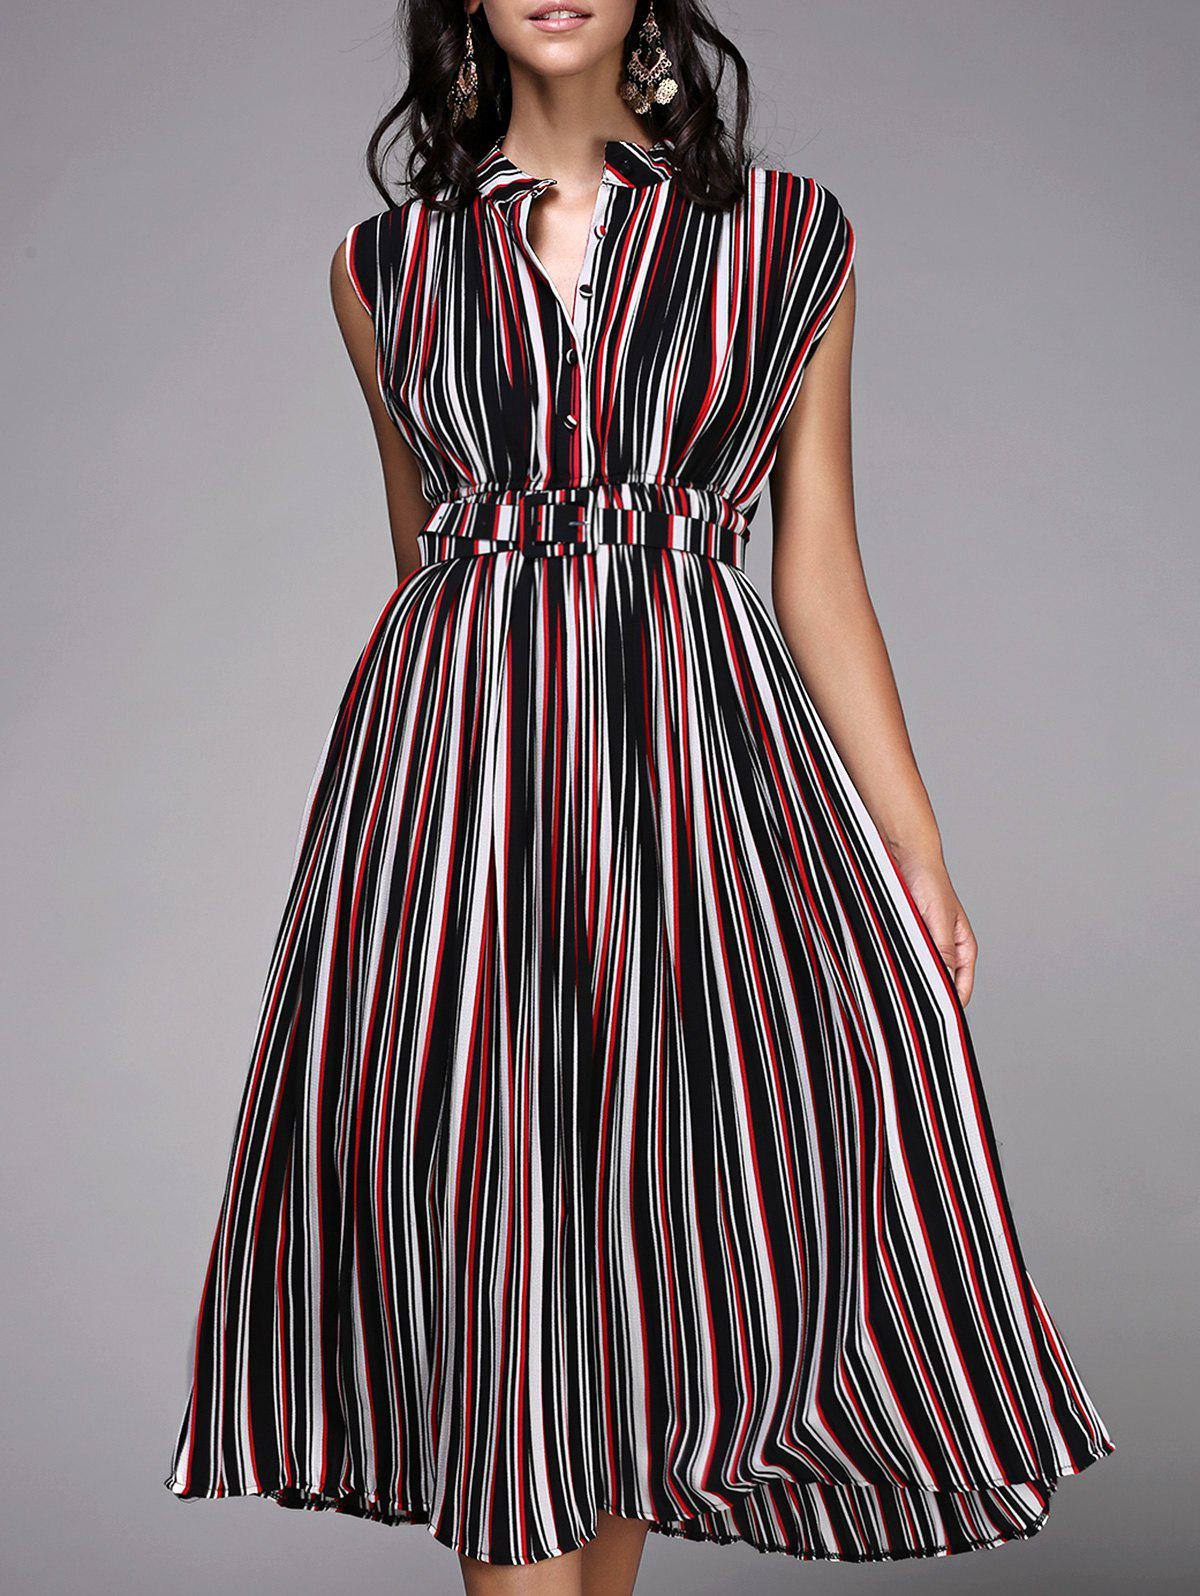 Fashionable Sleeveless Striped Button Design Women's Dress - ONE SIZE(FIT SIZE XS TO M) STRIPE